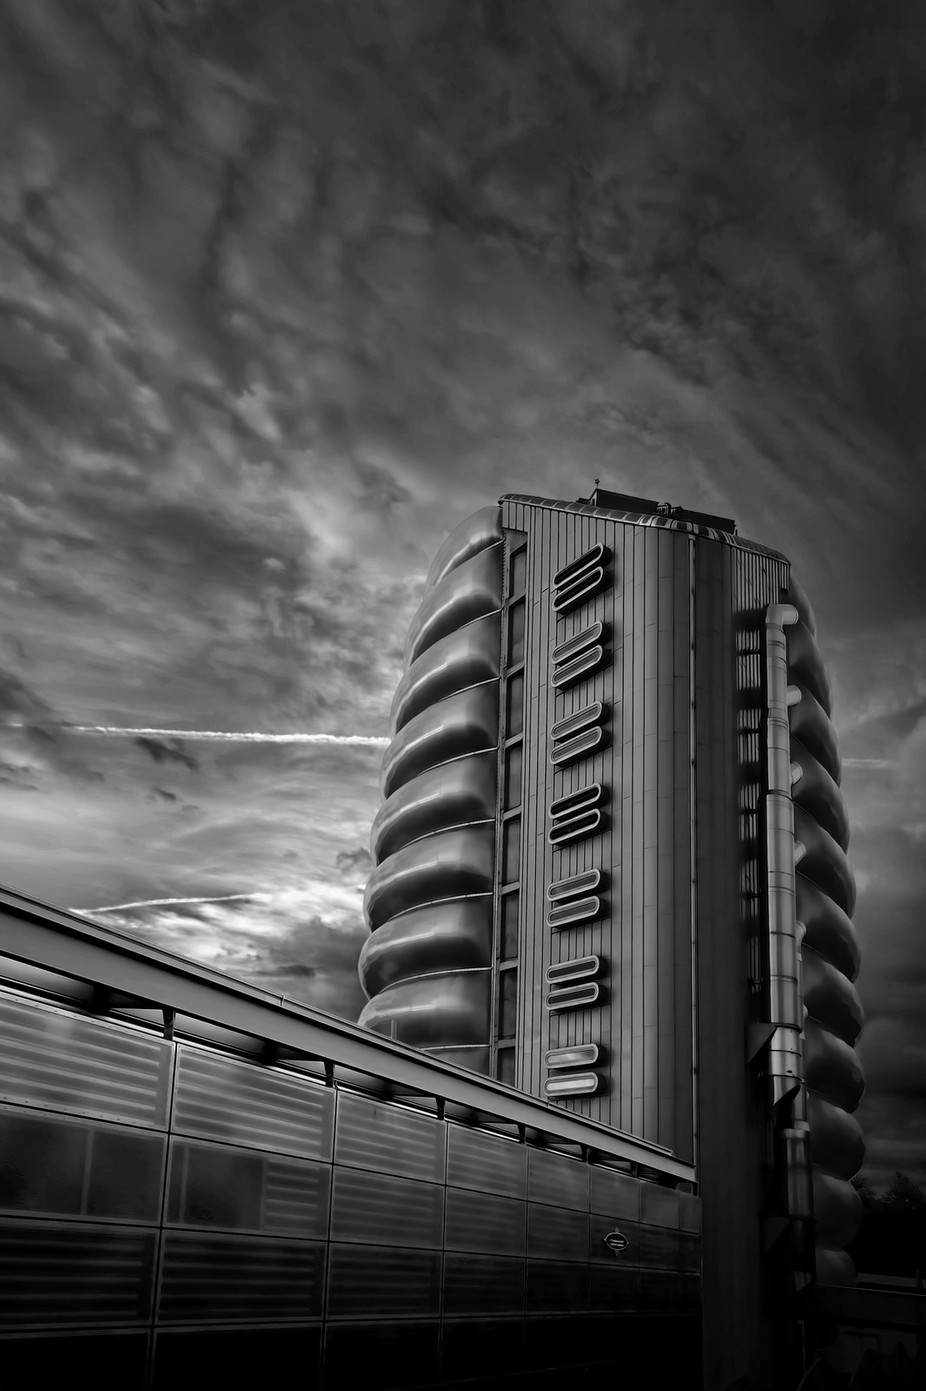 National Space Centre by RAPJones - Black And White Architecture Photo Contest